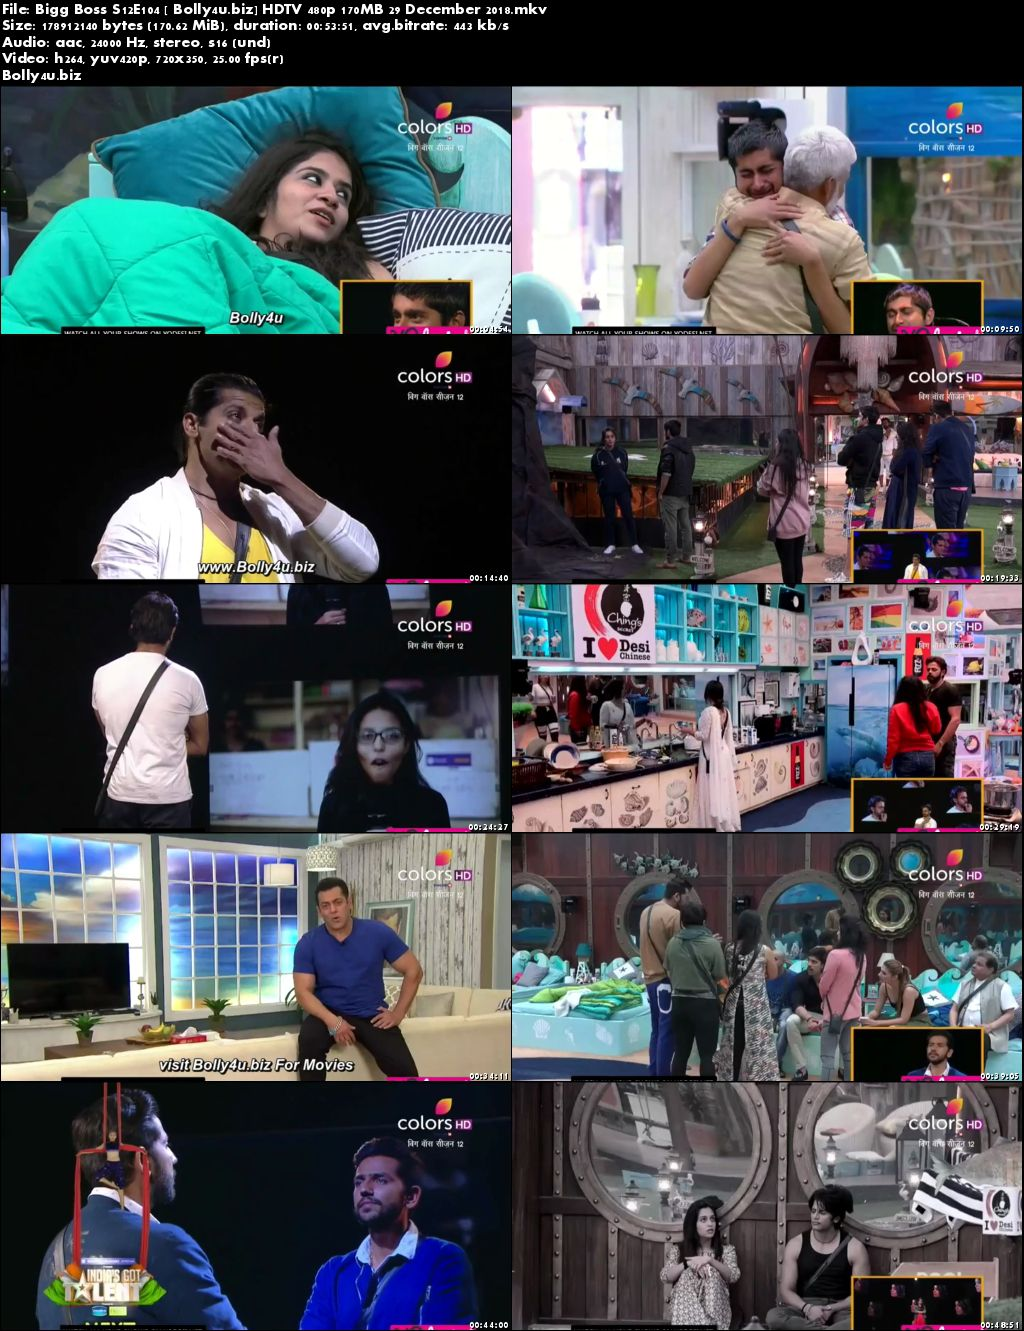 Bigg Boss S12E104 HDTV 480p 170MB 29 December 2018 Download